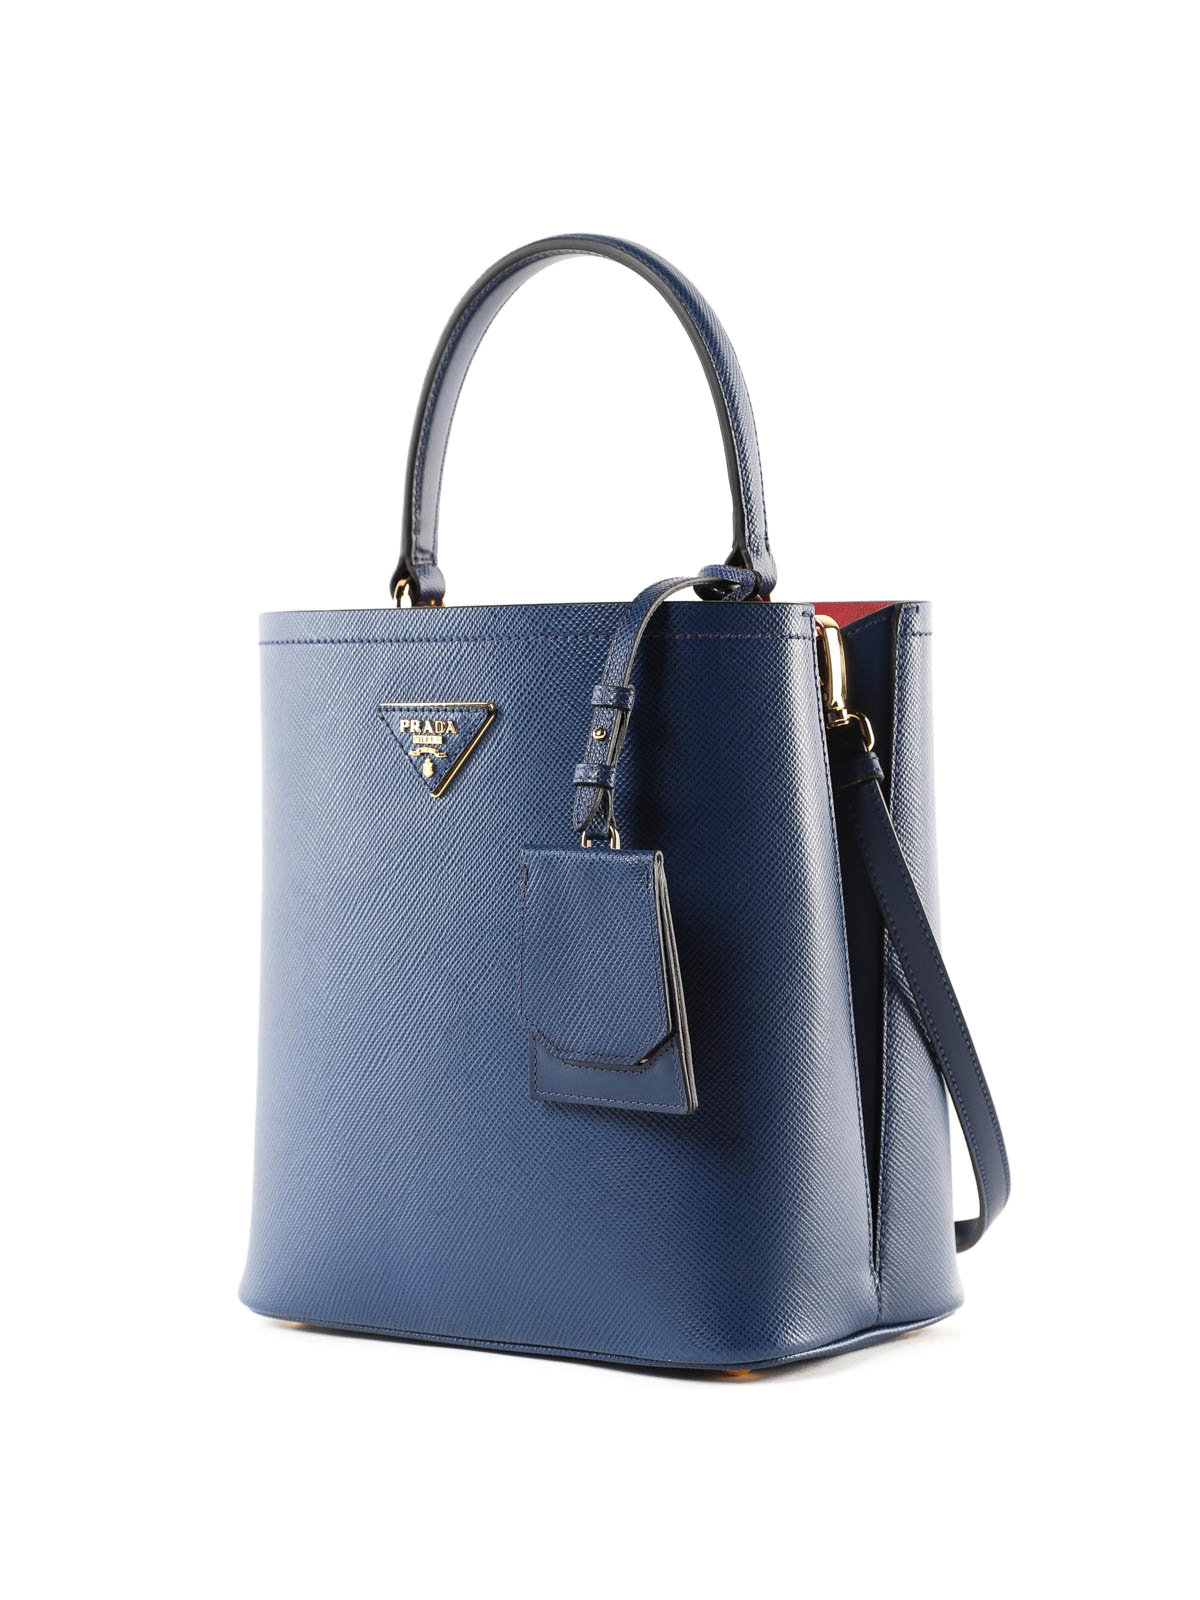 PRADA  Bucket bags online - Blue Saffiano leather double bucket bag aef62c8e8e68e